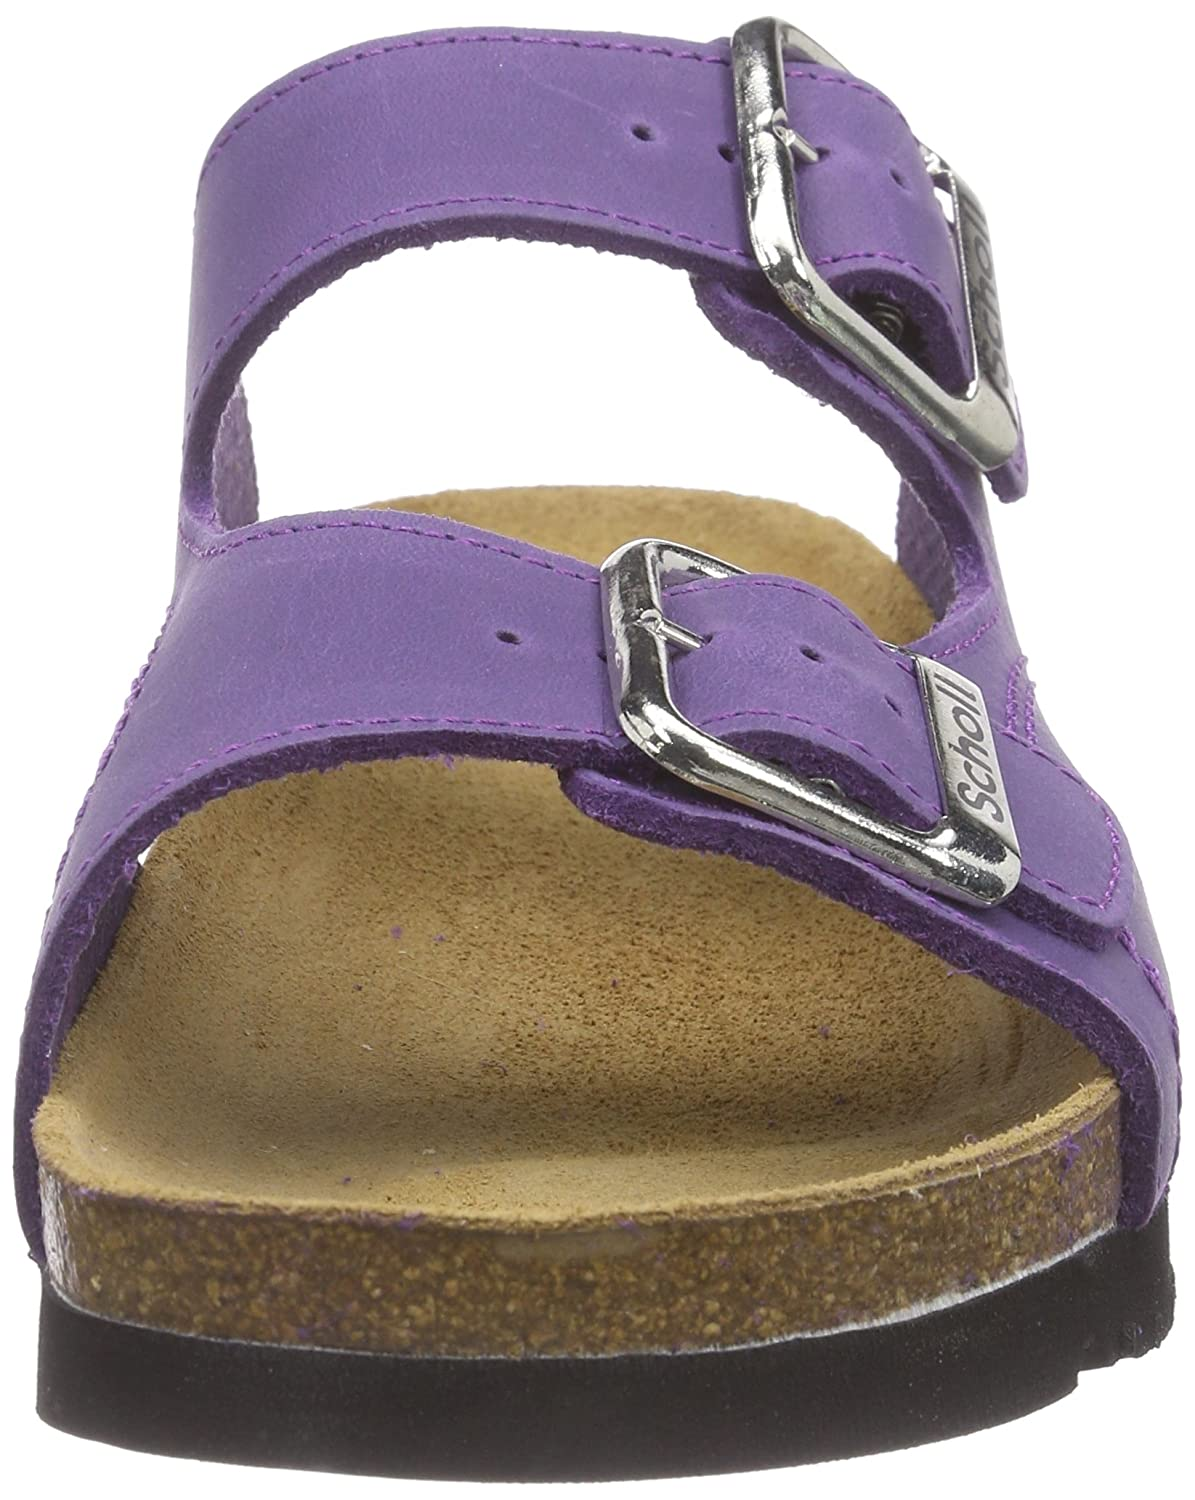 Scholl Womens MOLDAVA WEDGE AD plumb Open Sandals Purple Size 6  Amazoncouk Shoes  Bags